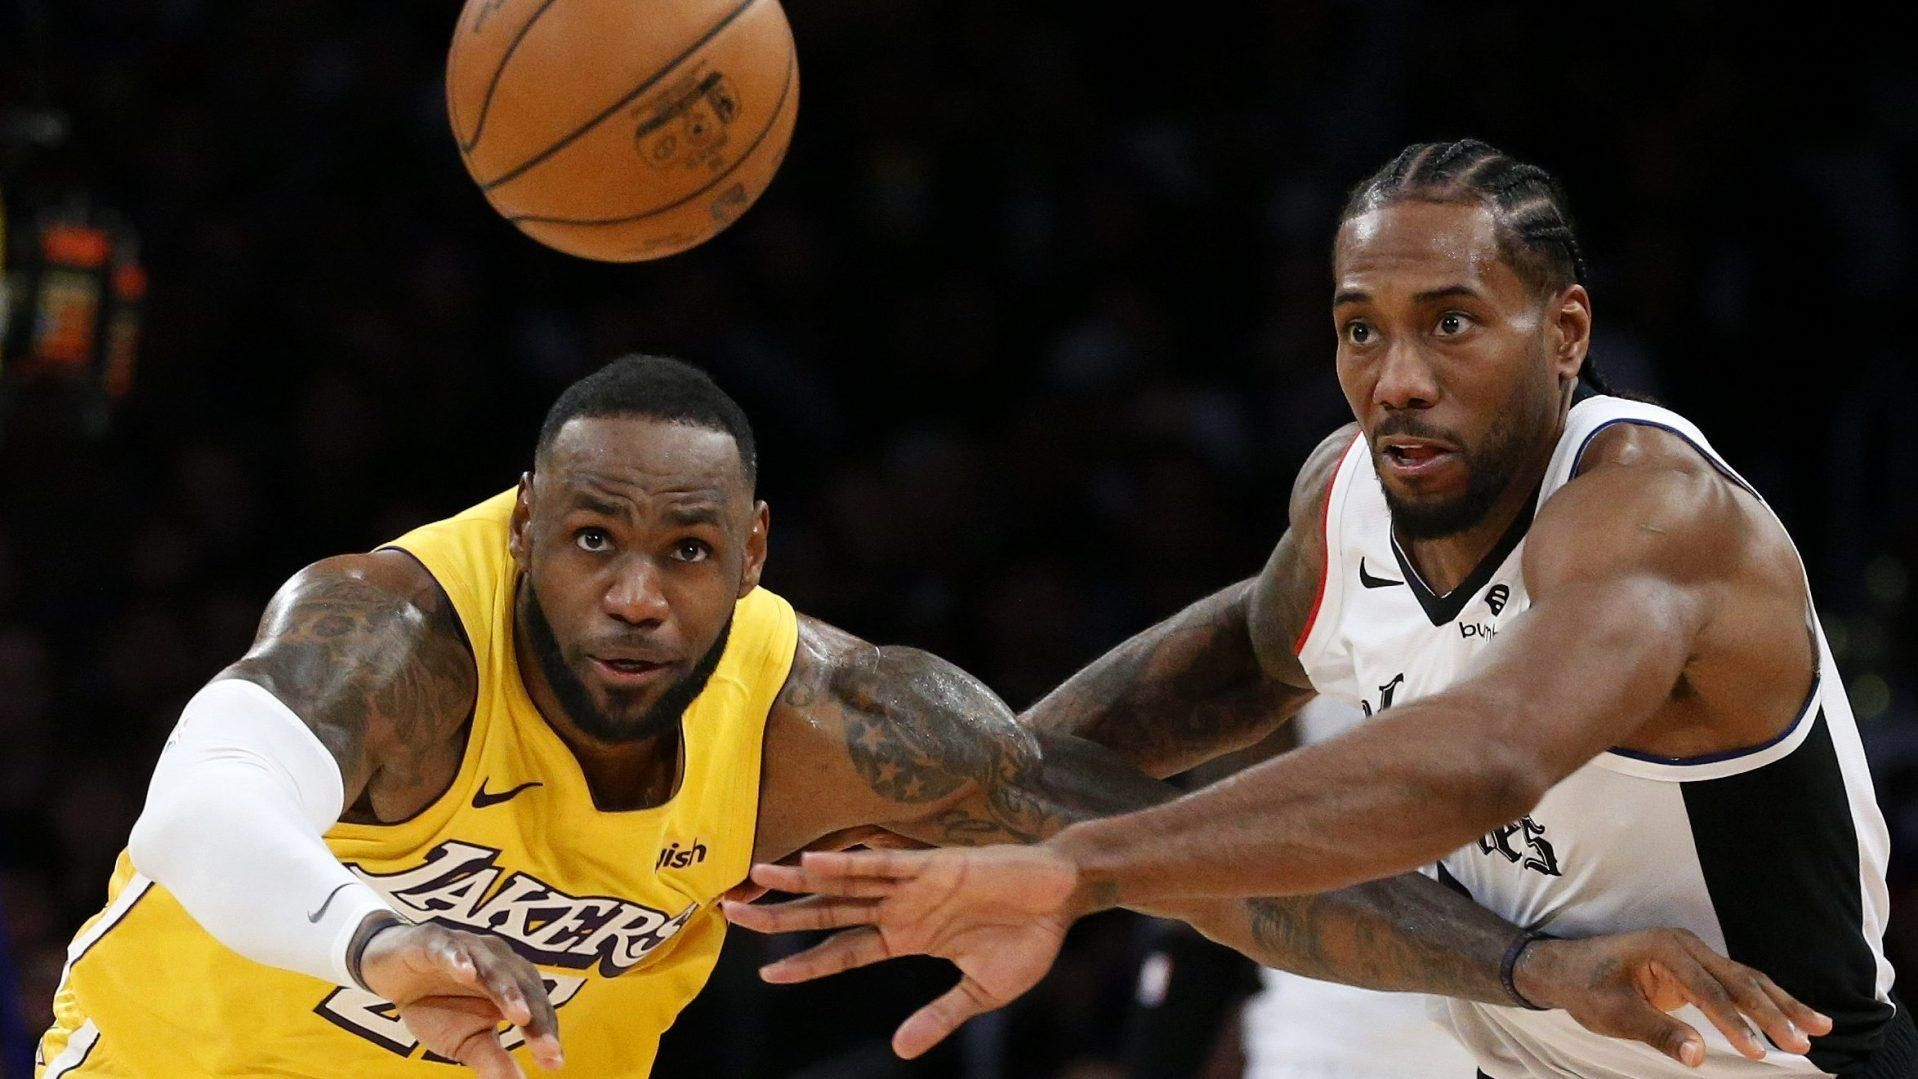 The Lakers And Clippers Have Never Met In The Playoffs Which Is The Central Reason There Has Never Been A Real Los Angeles In 2020 Nba News Lakers Vs Clippers Lakers